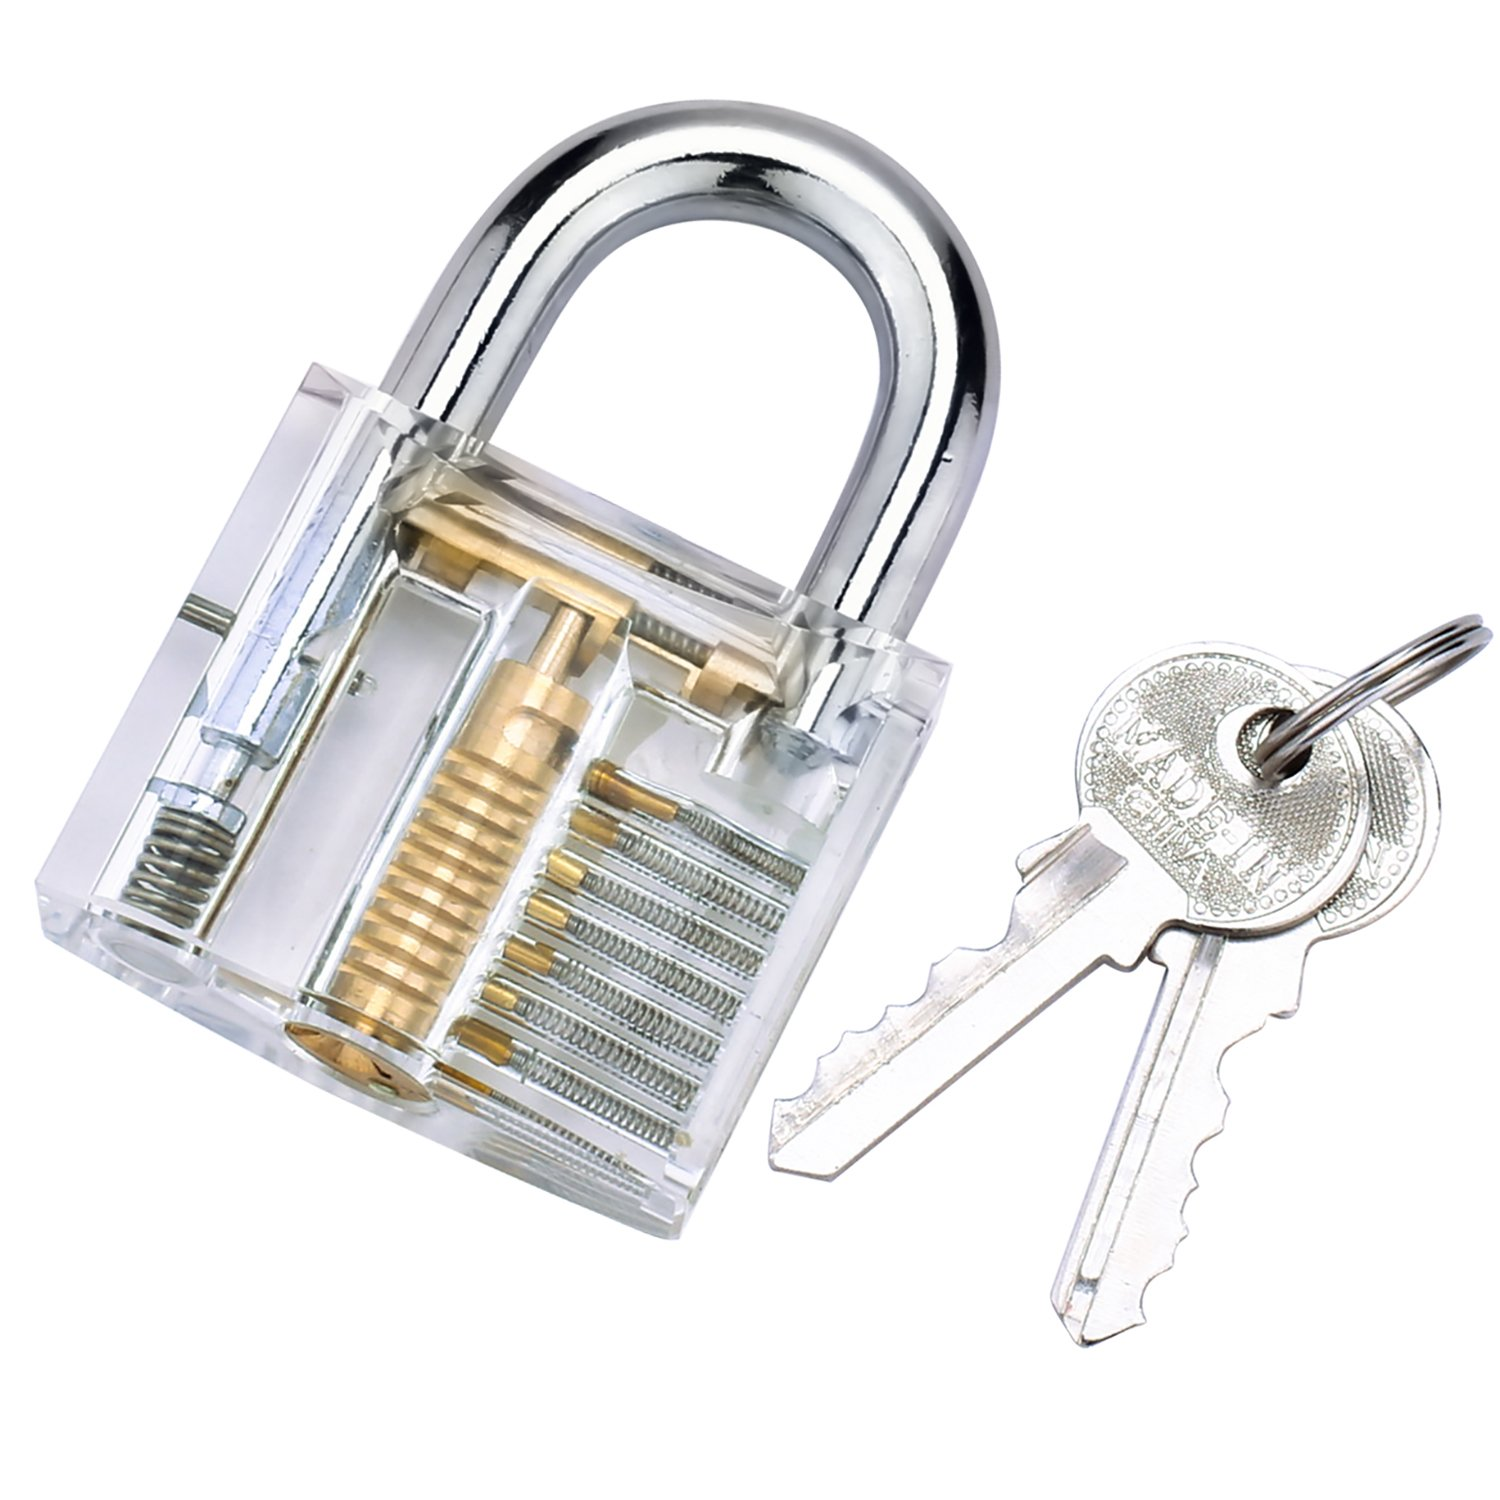 BESTOPE Professional Practice Padlocks Lock Crystal Cutaway of Practice Training Skill Pick Lock for Beginners Locksmith with Two Keys